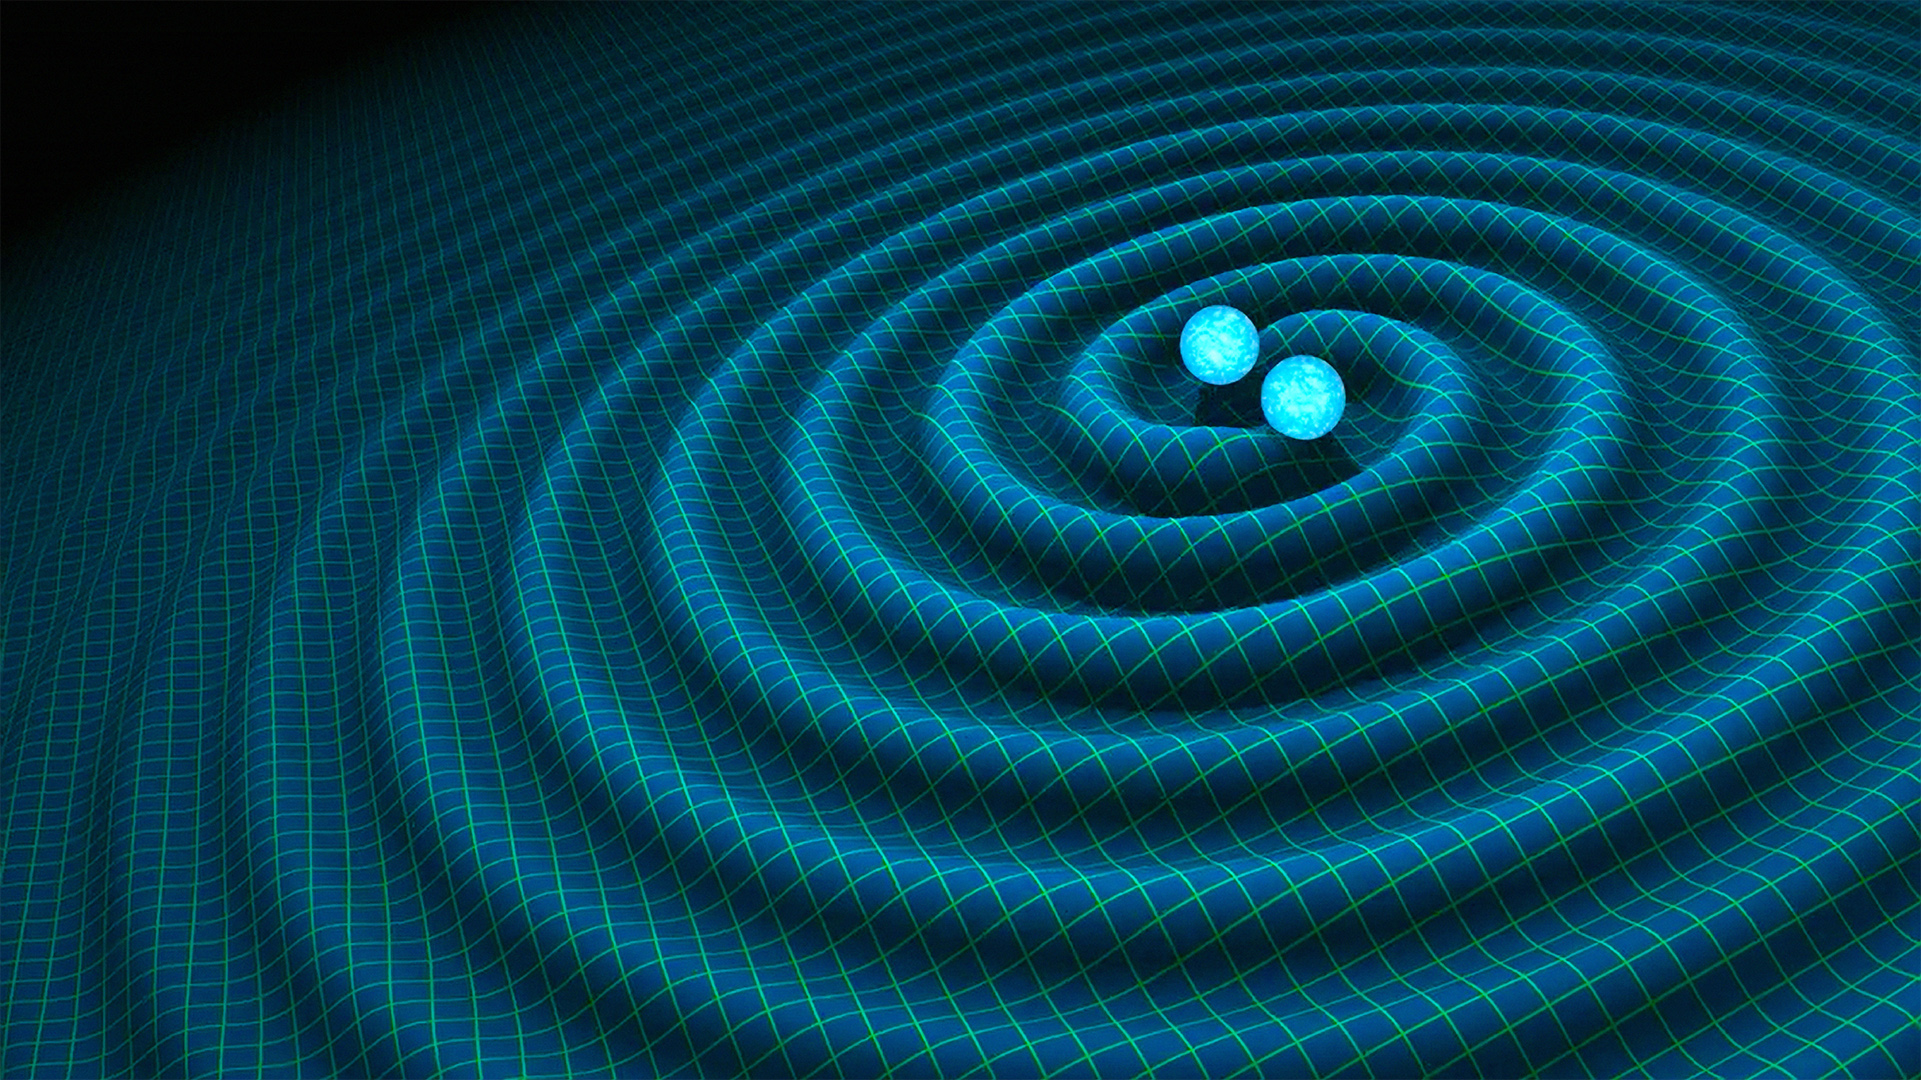 Gravitational-Wave Hunters Surf to Top Science Magazine Award